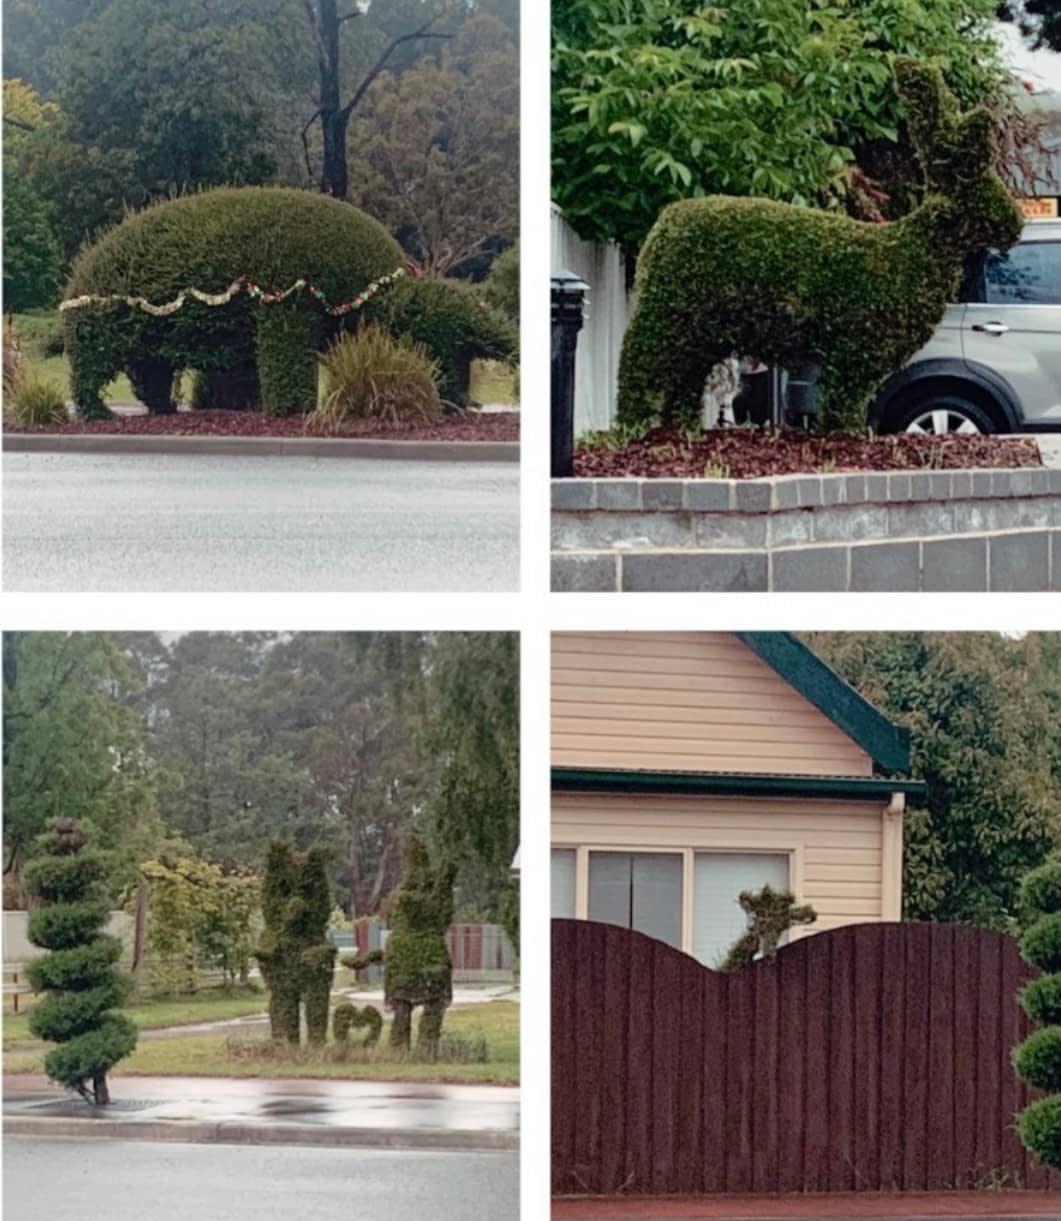 Railton Tasmania - Collage of bushes shaped liked animals - Things to Do in Tasmania